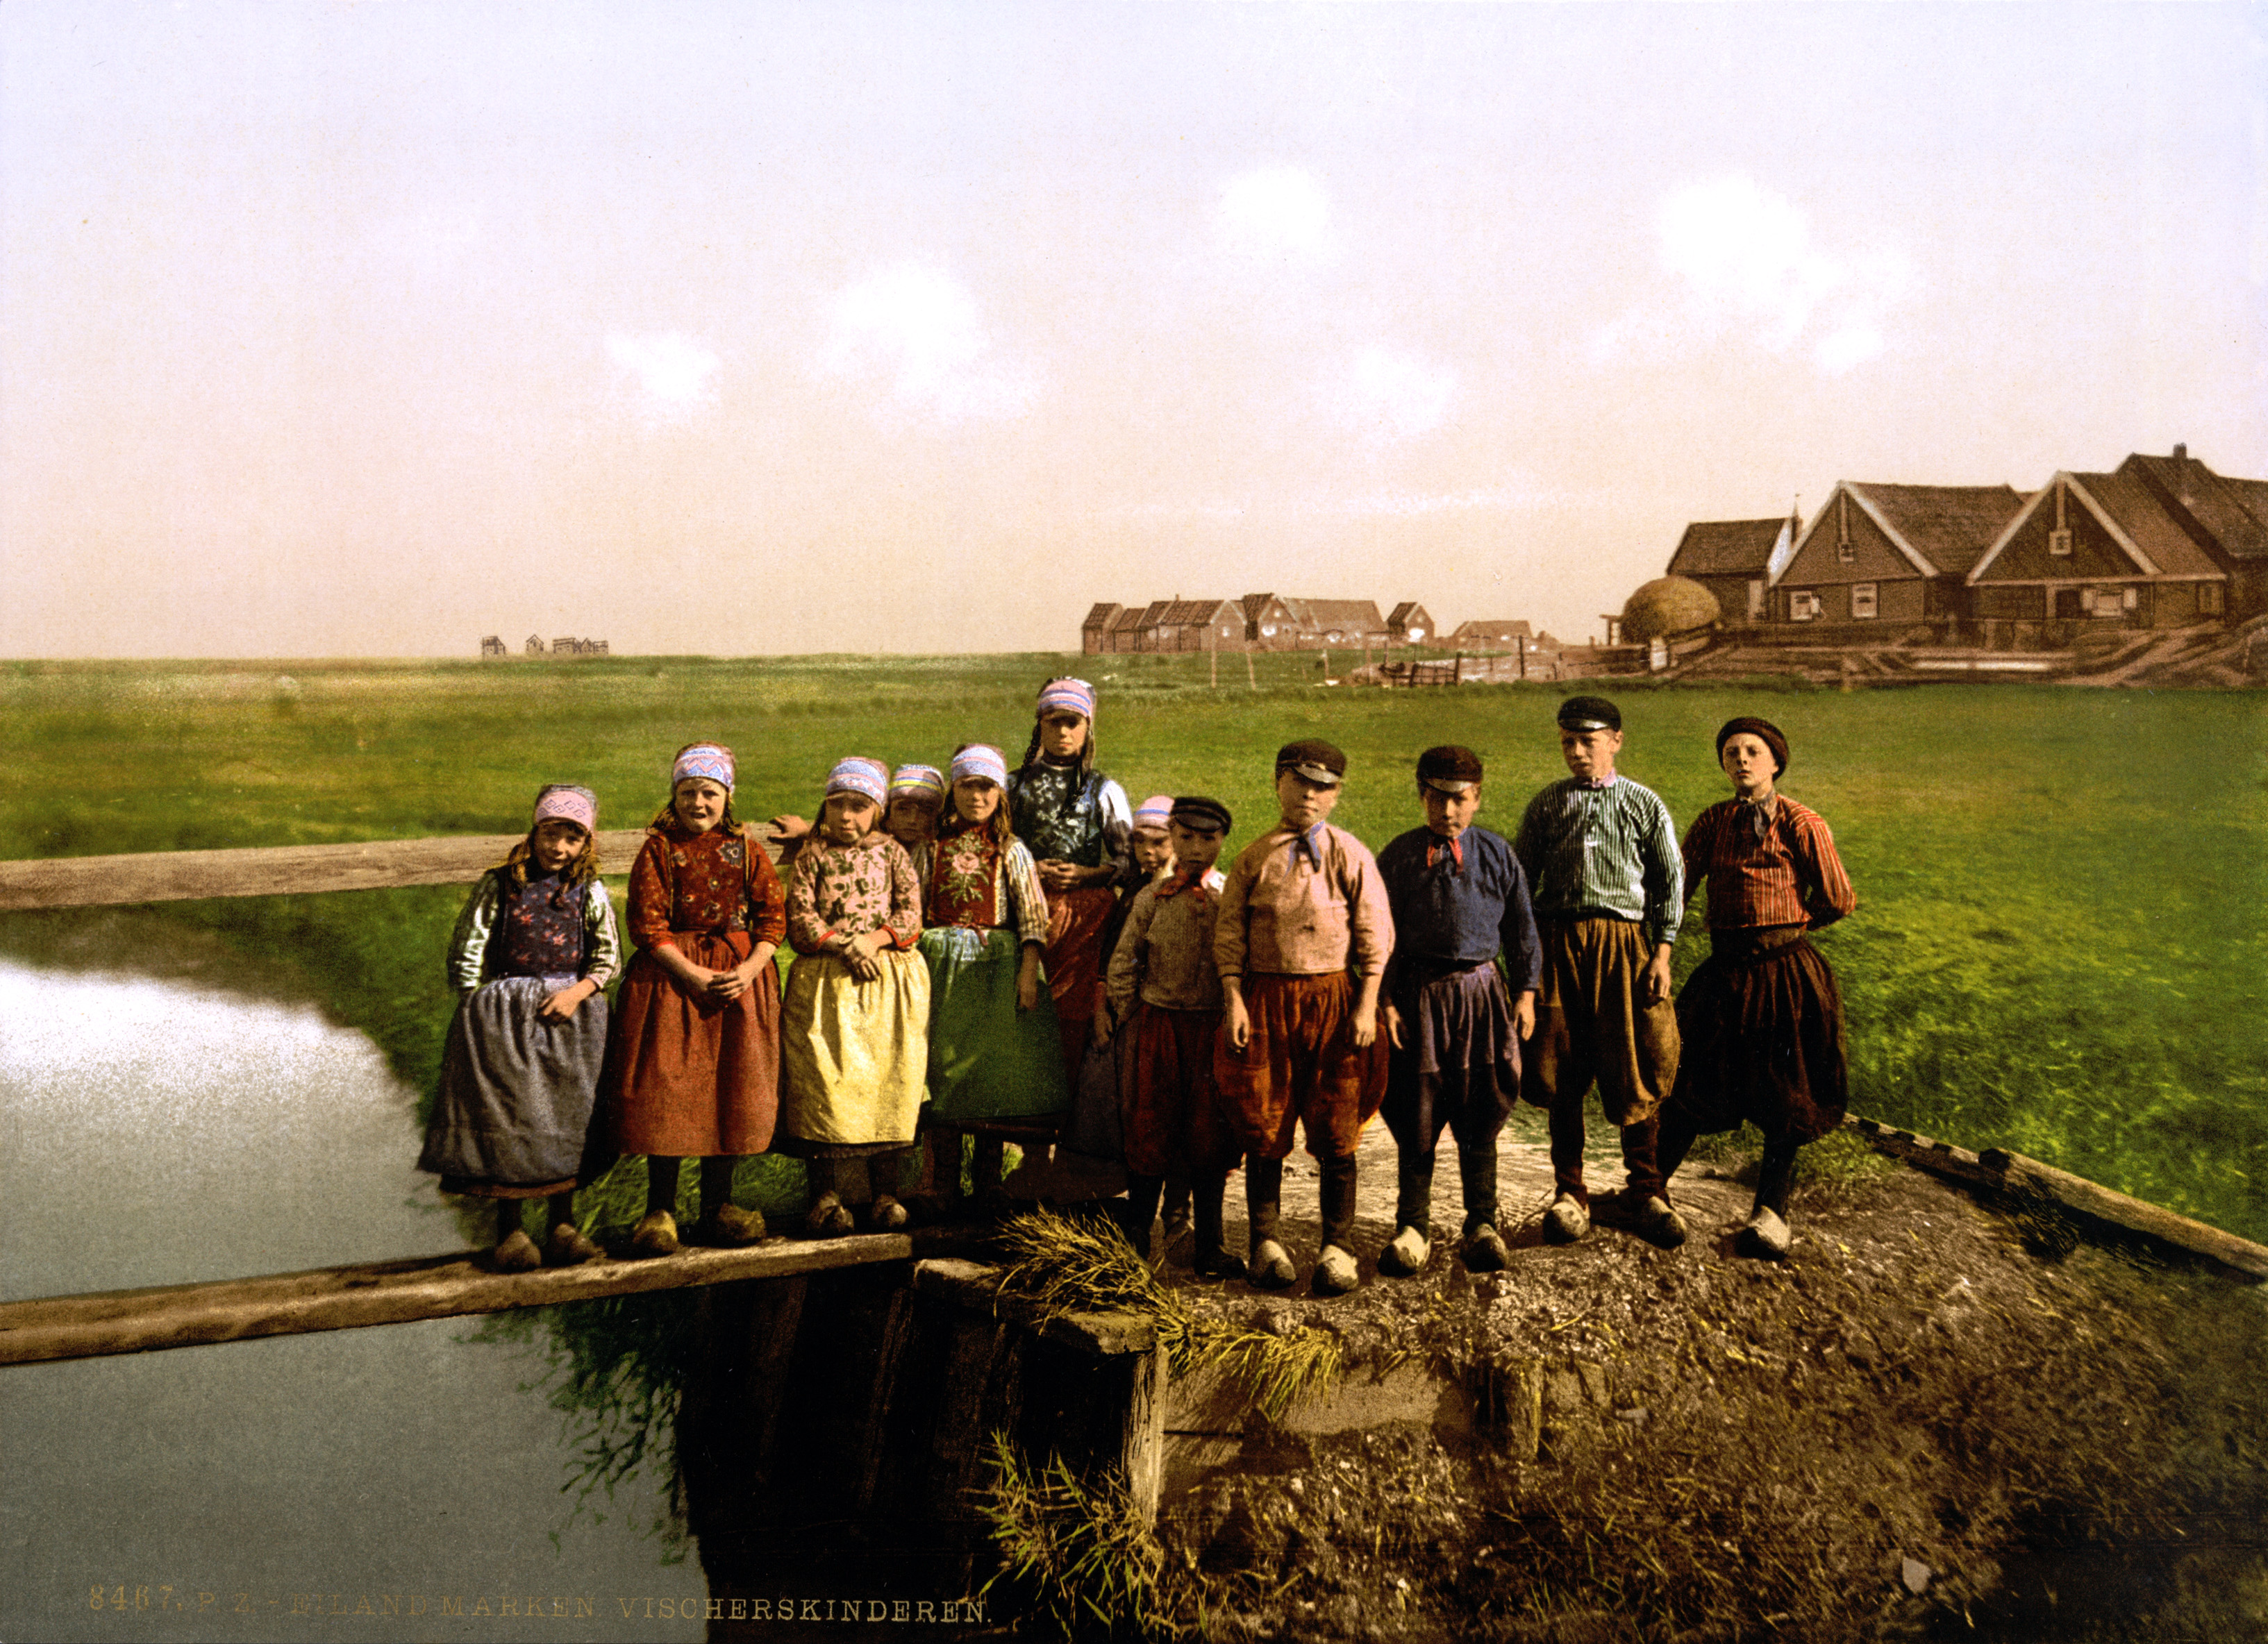 Fisher children, Marken Island, North Holland, the Netherlands, 1890s